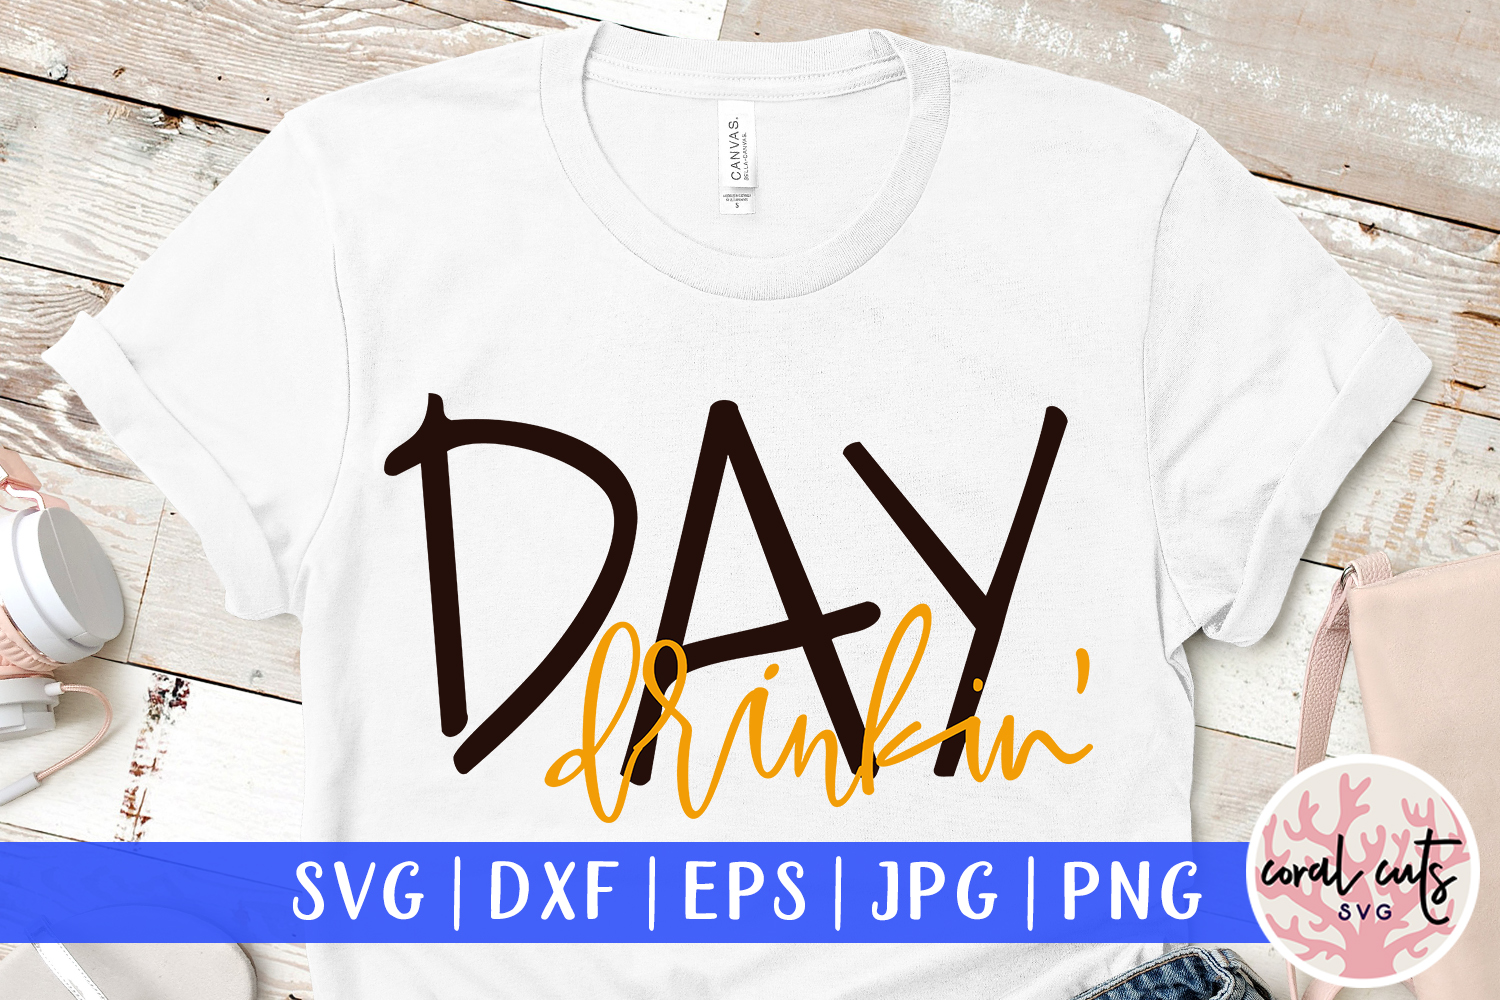 Day drinkin - SVG EPS DXF PNG Cutting File example image 1